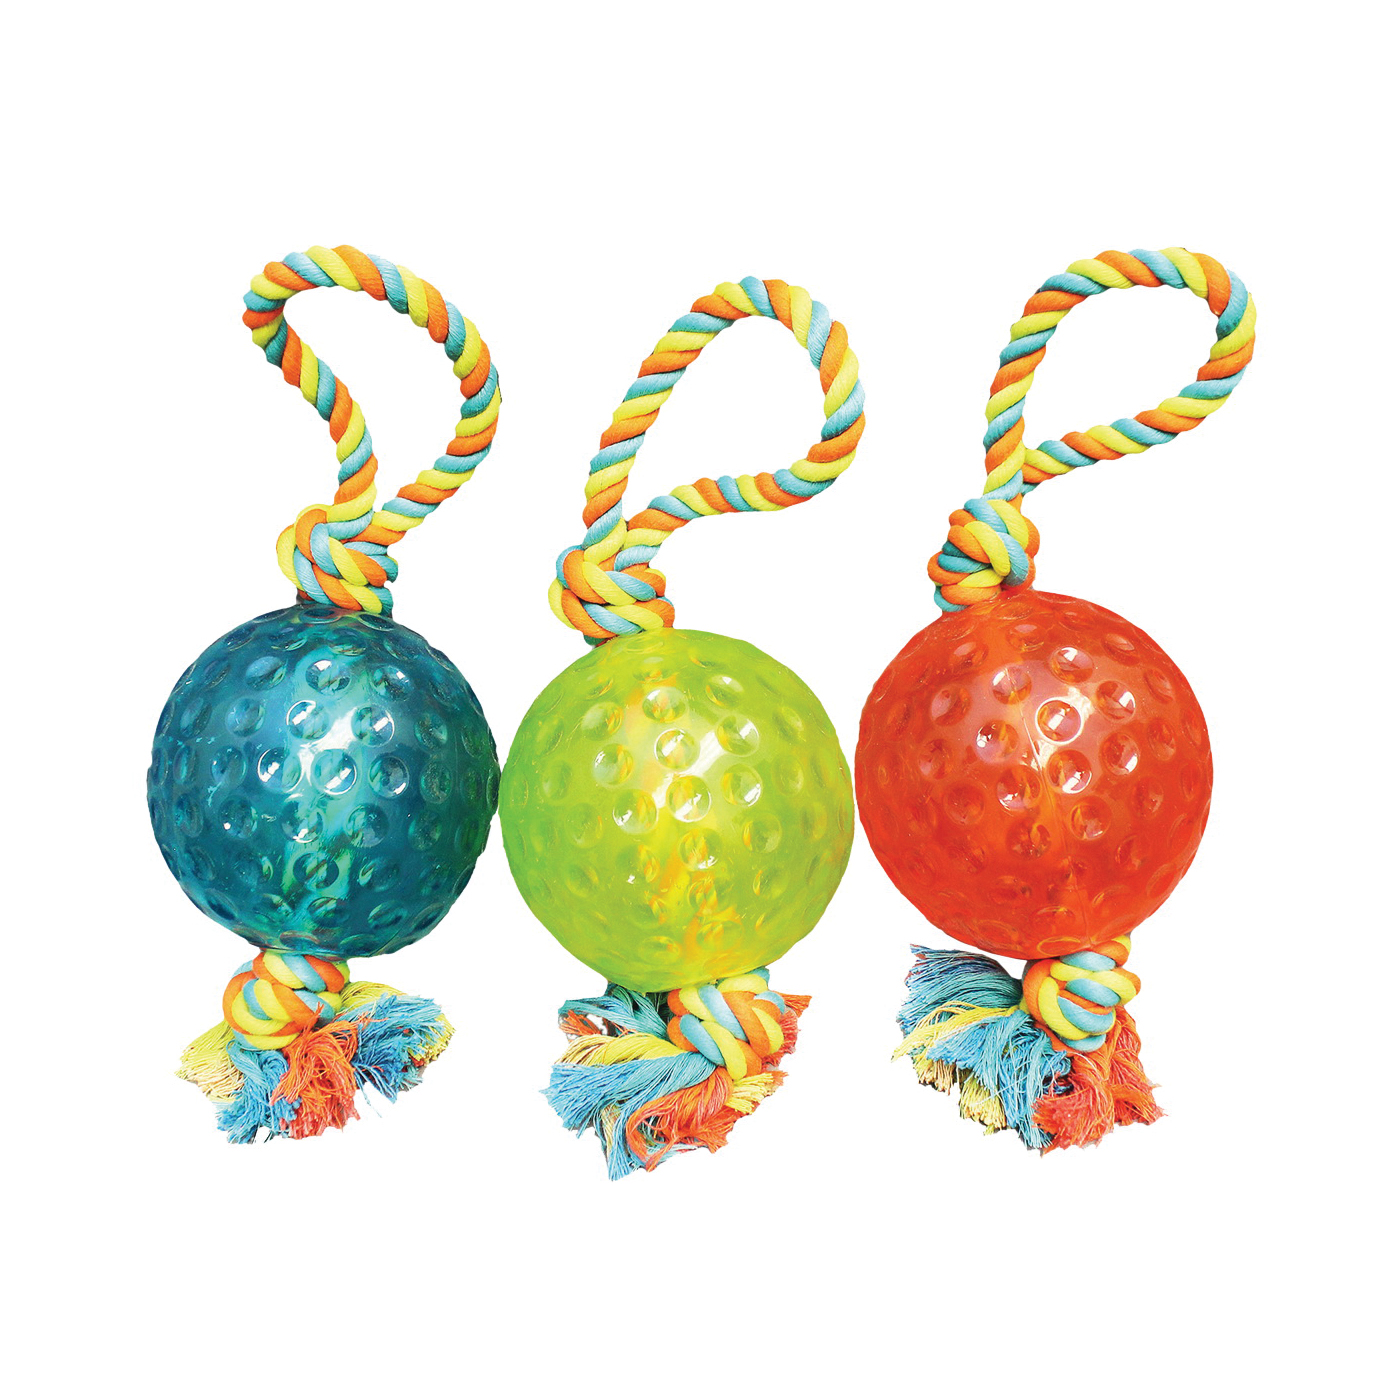 Picture of Chomper WB15527 Dog Toy, Tug Ball Toy, Thermoplastic Rubber